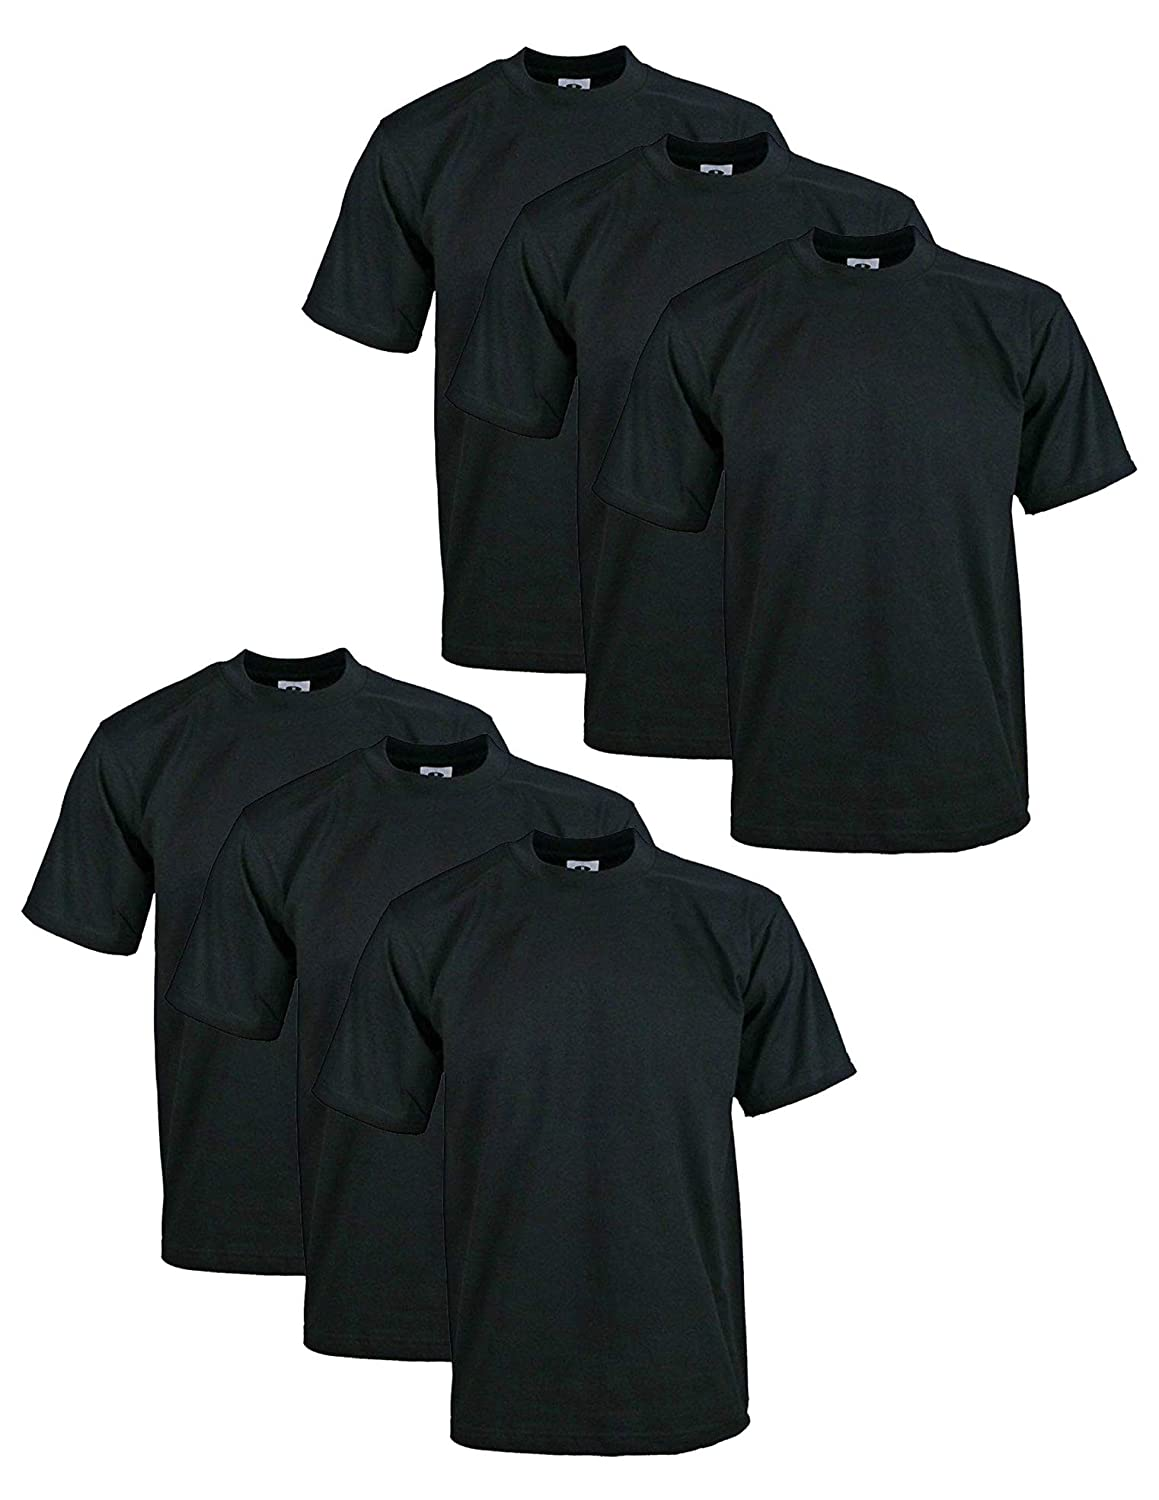 1097fee54 Pro Club Men's Pack of 6 Heavyweight Cotton T-Shirt 3XL (Black): Amazon.ca:  Clothing & Accessories